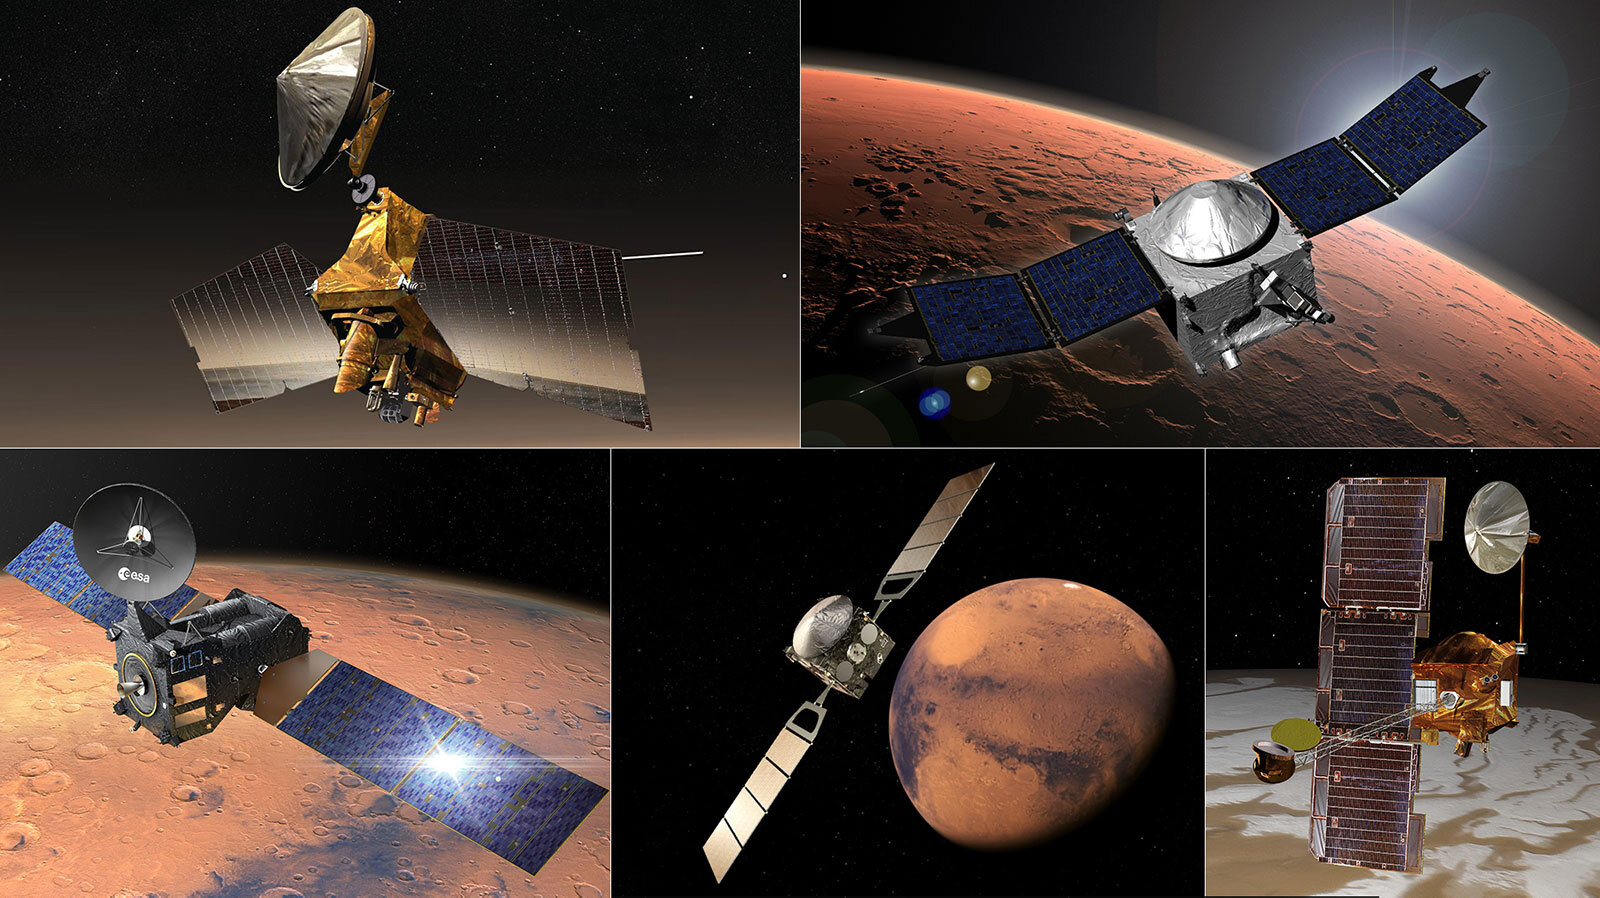 Five spacecraft currently in orbit about the Red Planet make up the Mars Relay Network to transmit commands from Earth to surface missions and receive science data back from them.